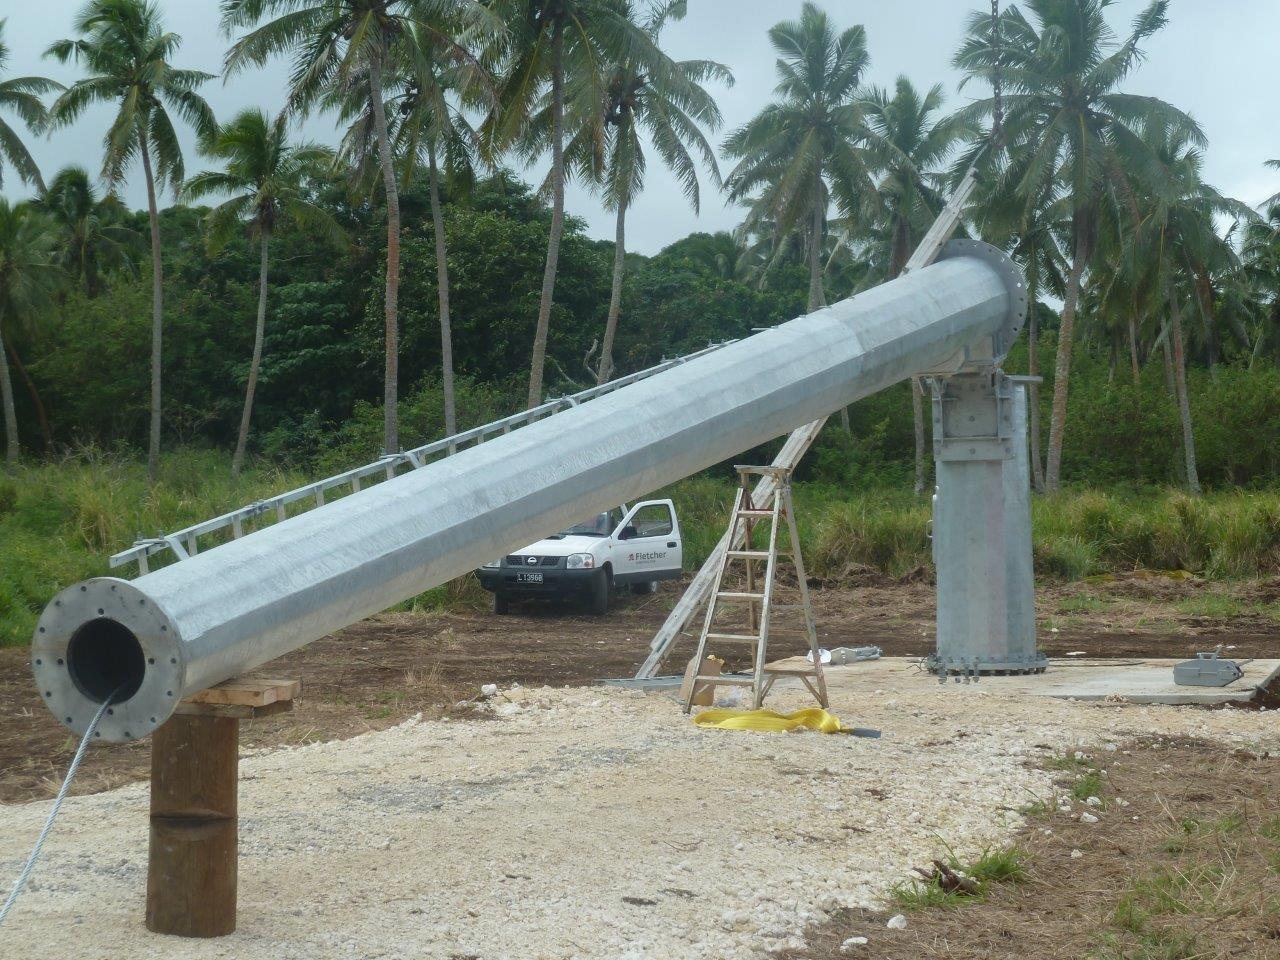 •The Gaia-Wind turbine at palm tree height, is designed to be in scale with its environment